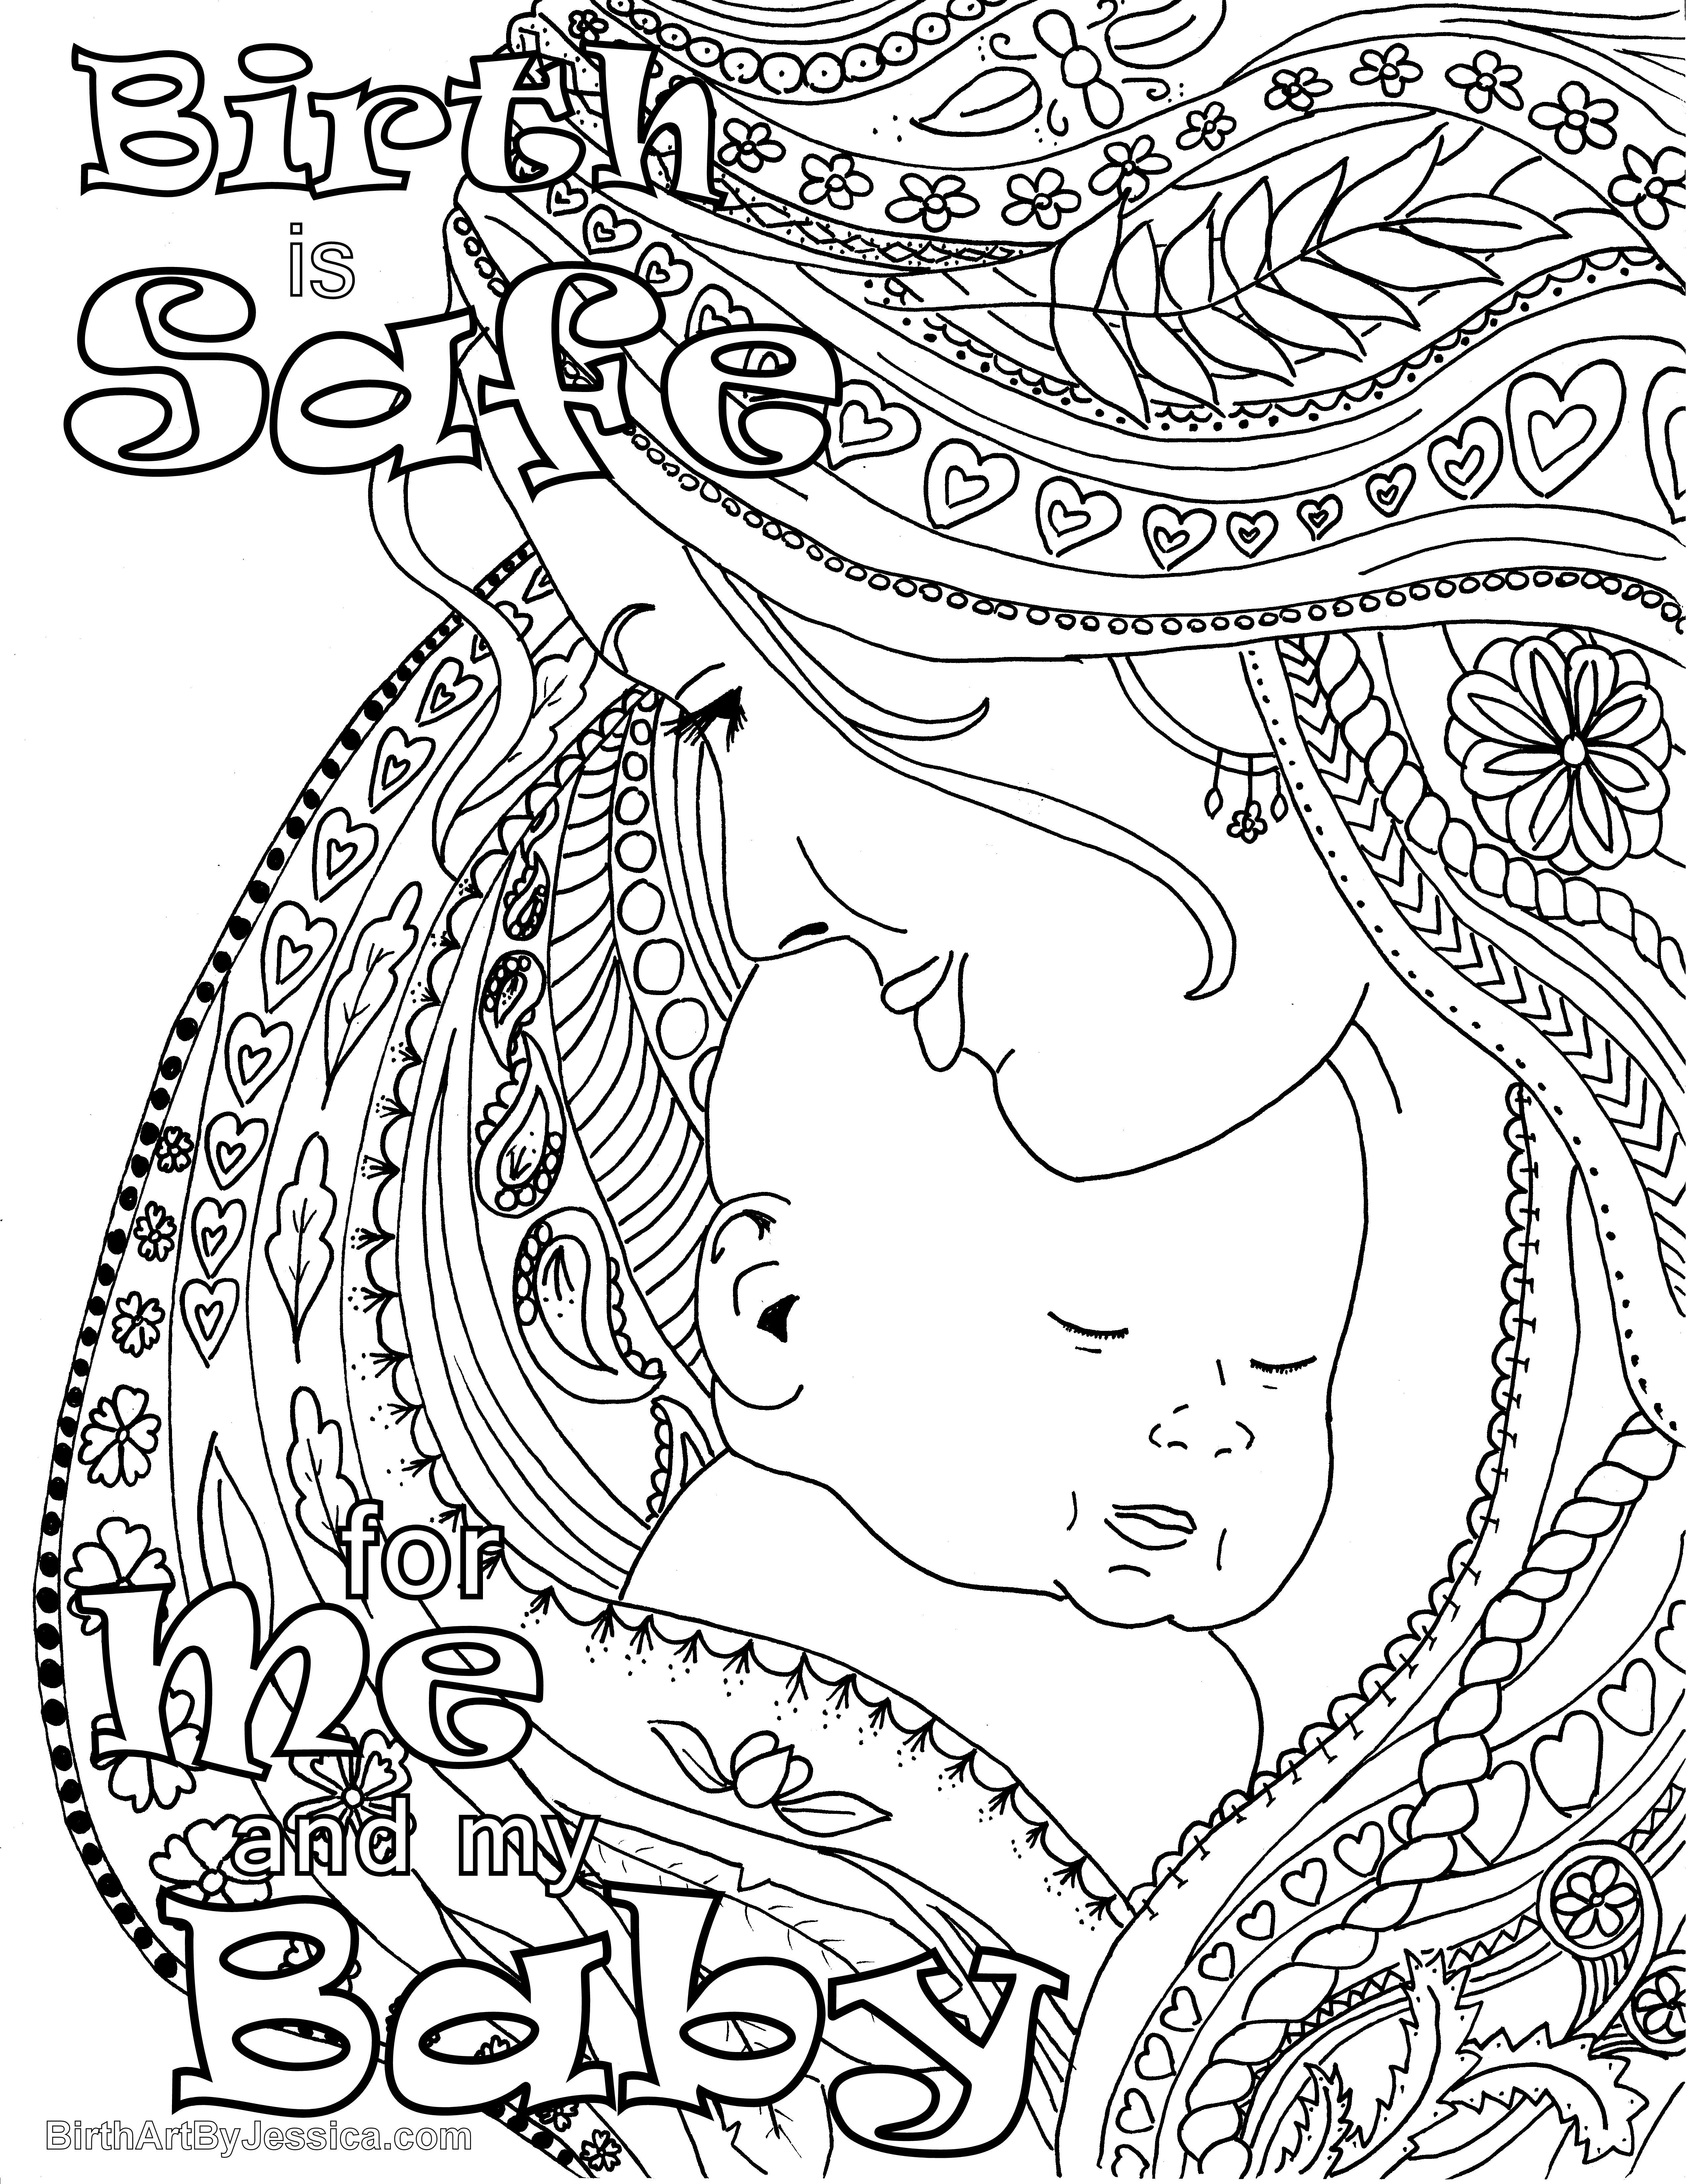 Birth Affirmation Coloring Page -Free Printable!- Birth is safe for ...